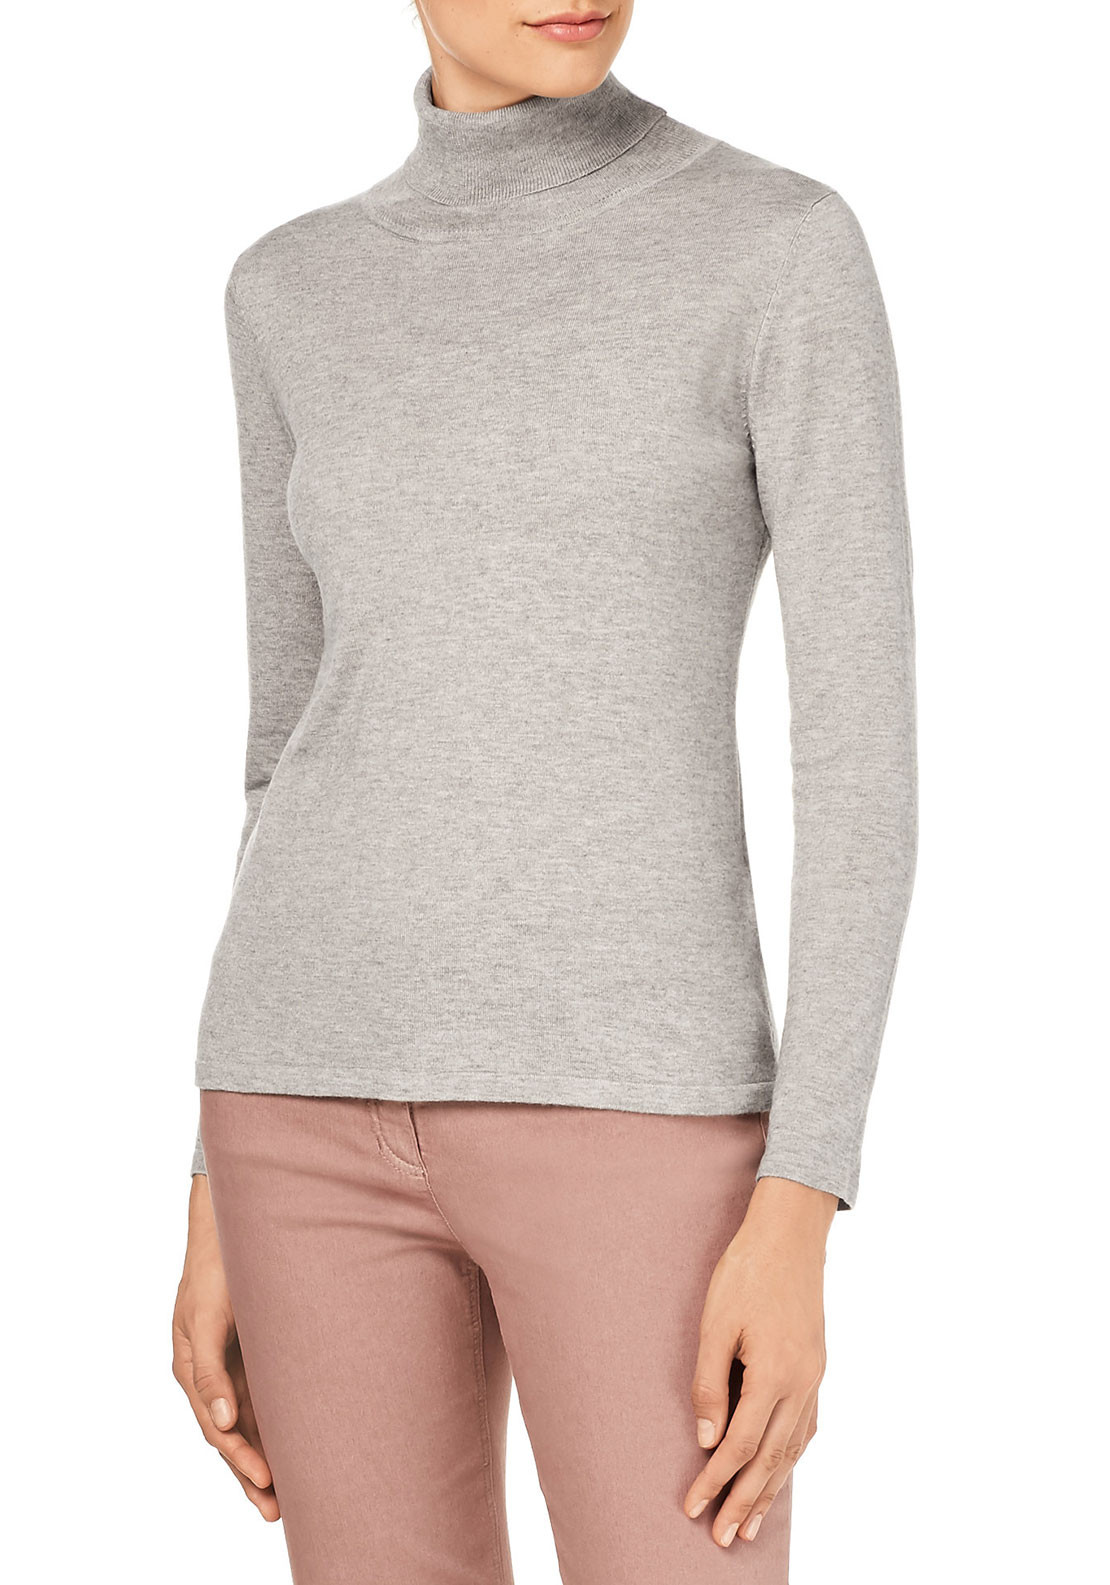 Gerry Weber Polo Neck Sweater, Cream